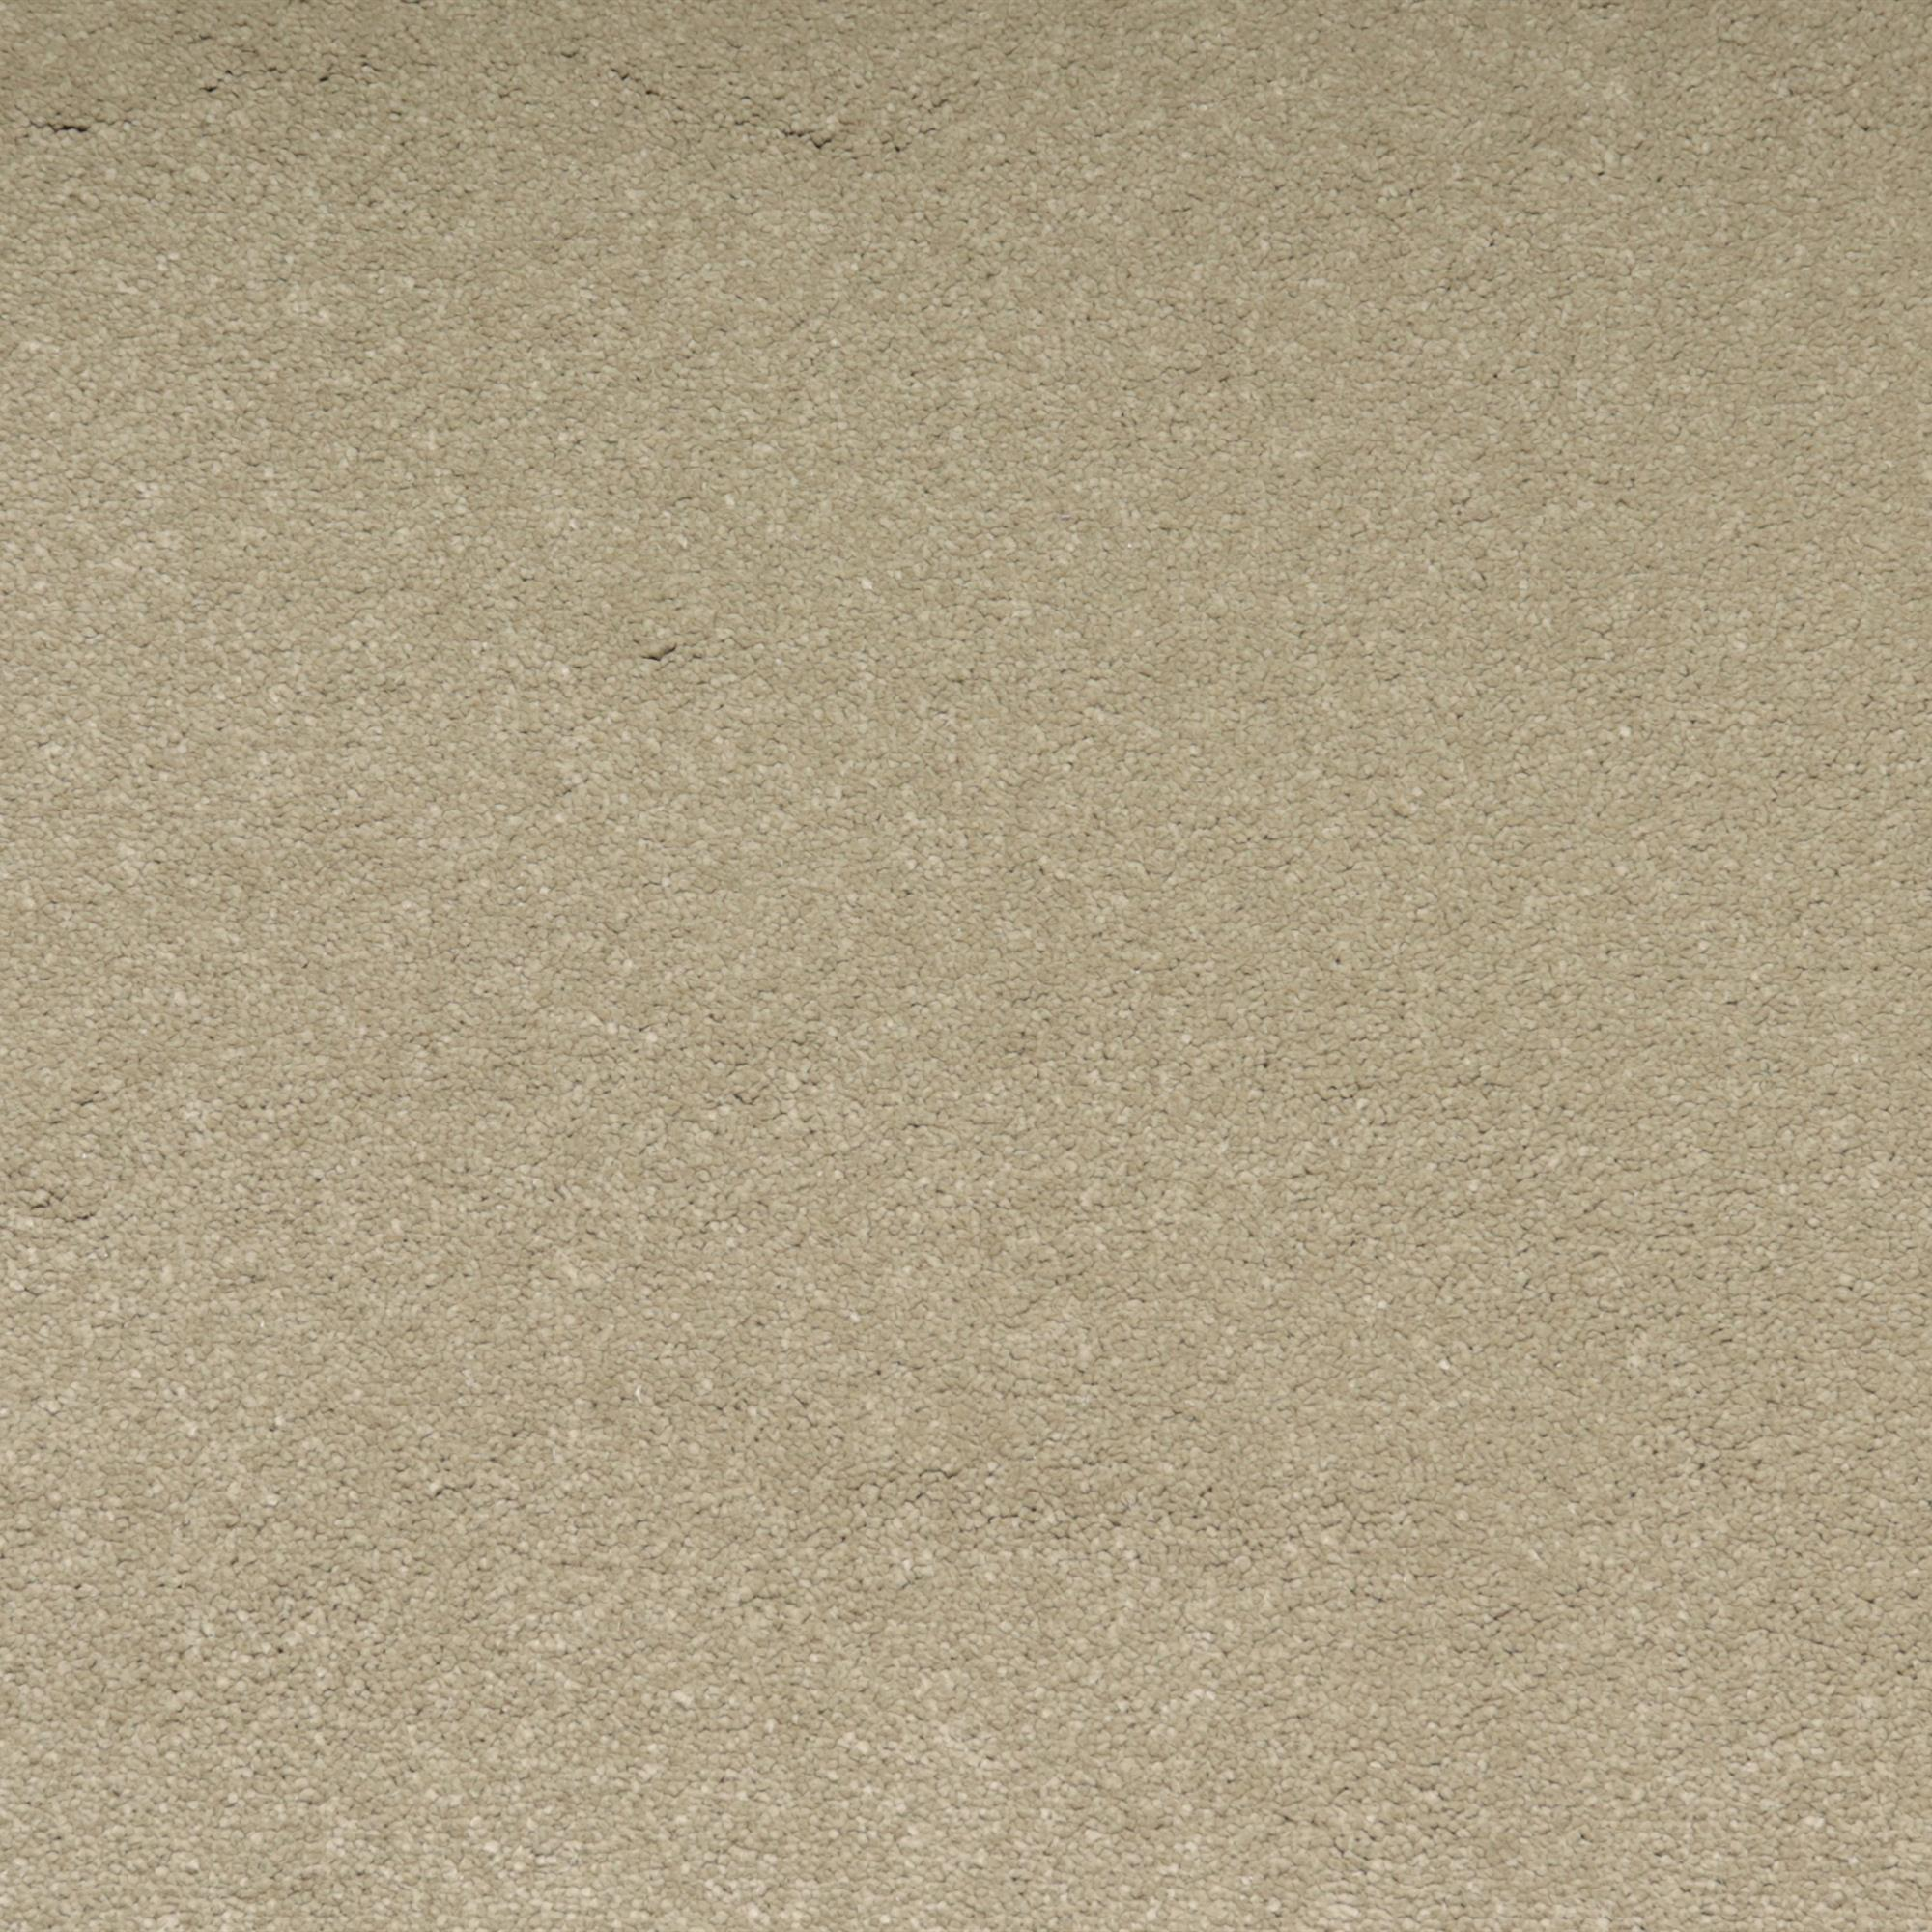 Signature Westminster Carpet, Westminster Ech7021 Rubery, swatch